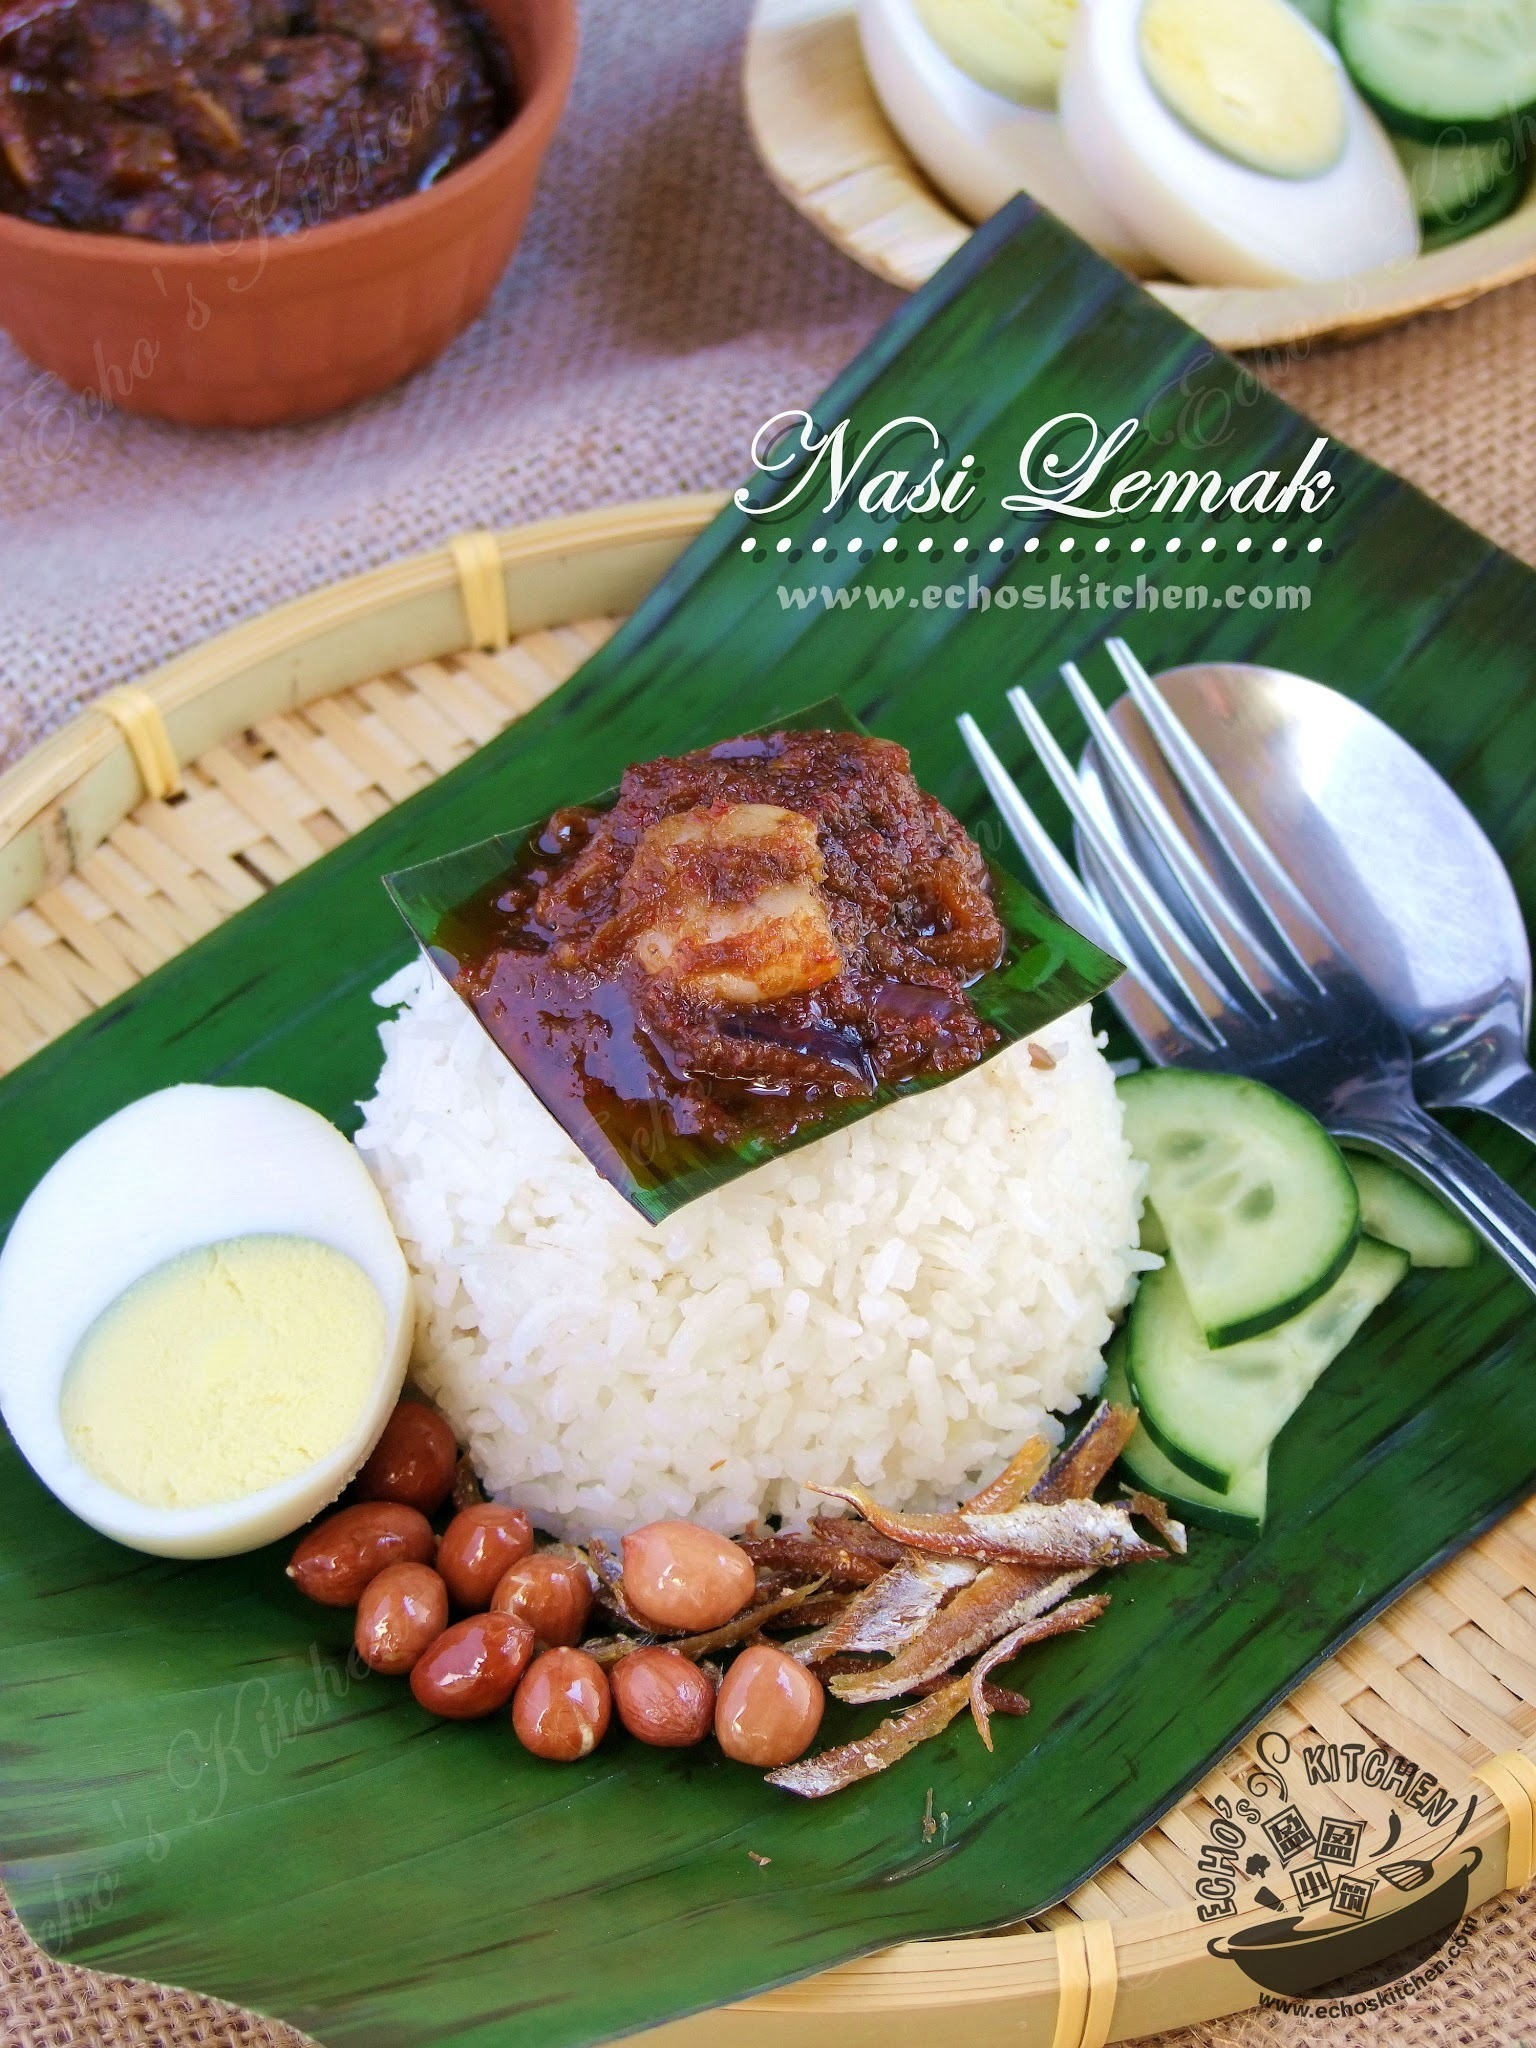 Nasi Lemak (Rice Cooked In Coconut Milk)